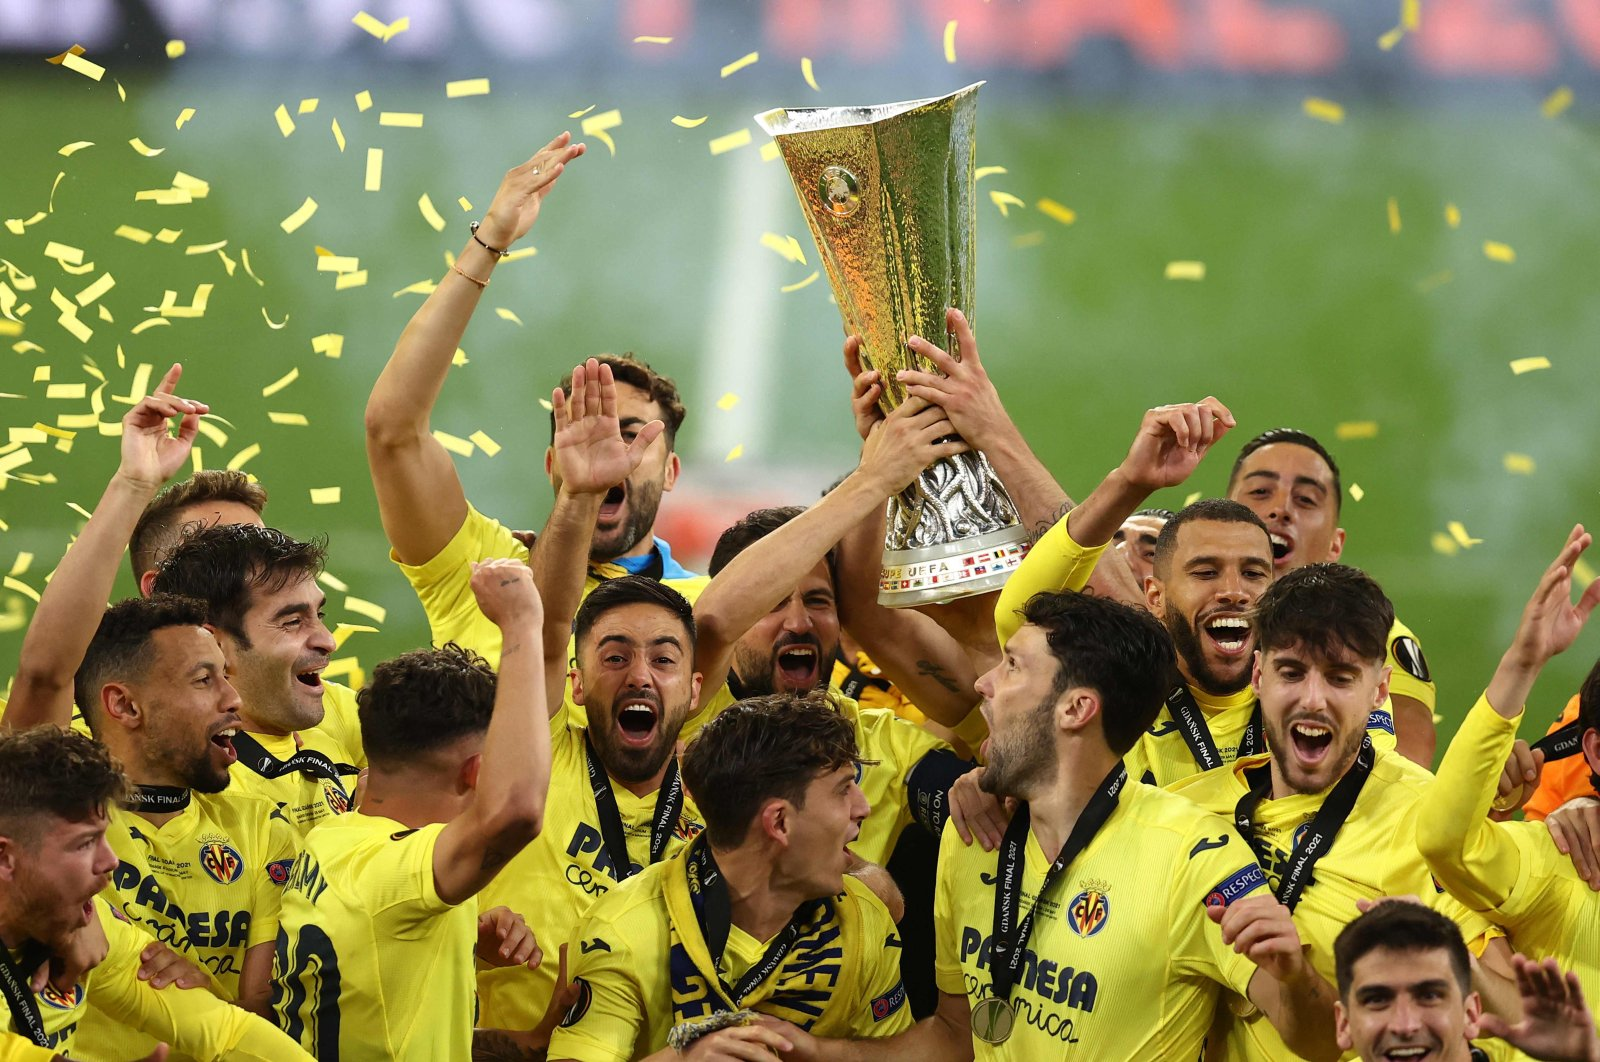 Villarreal players lift UEFA Europa League trophy after beating Manchester United in the final at the Gdansk Stadium, Gdansk, Poland, May 26, 2021. (AFP Photo)